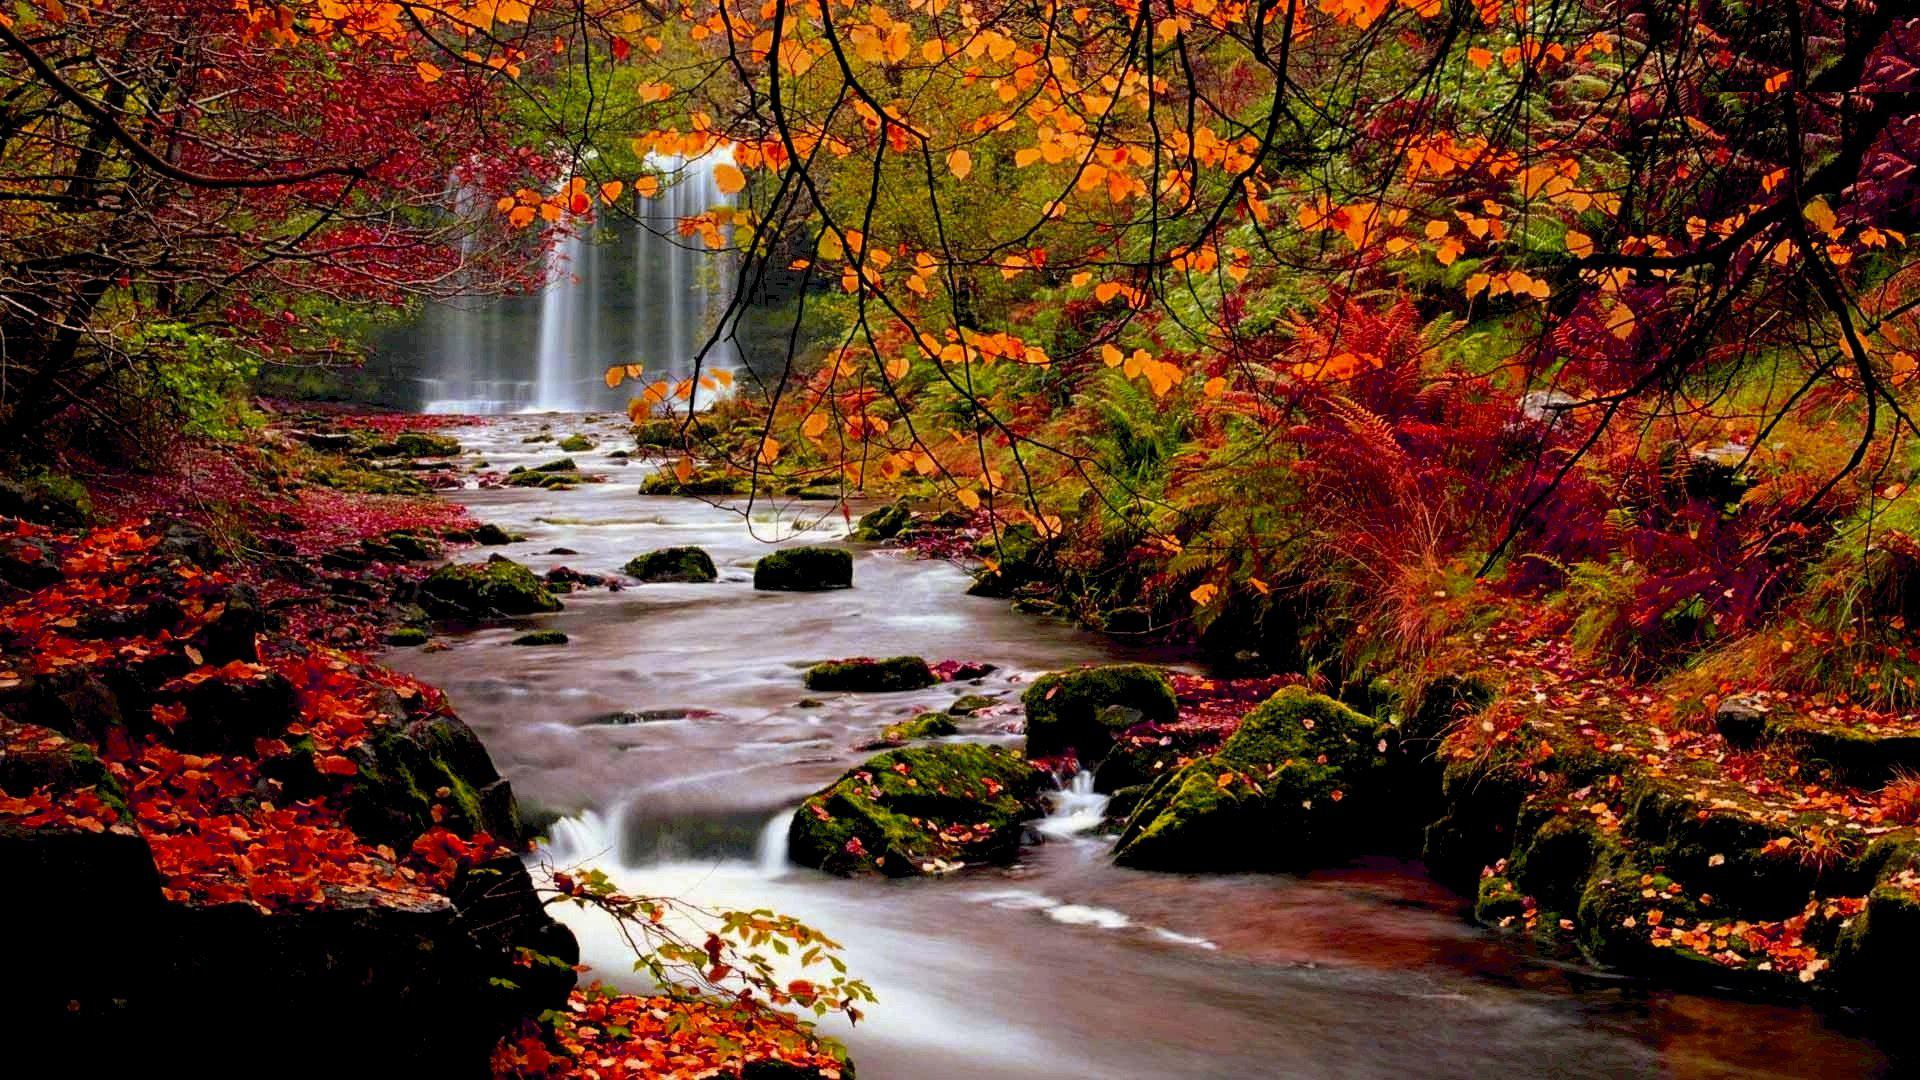 Fall Nature Desktop Wallpapers   Top Fall Nature Desktop 1920x1080